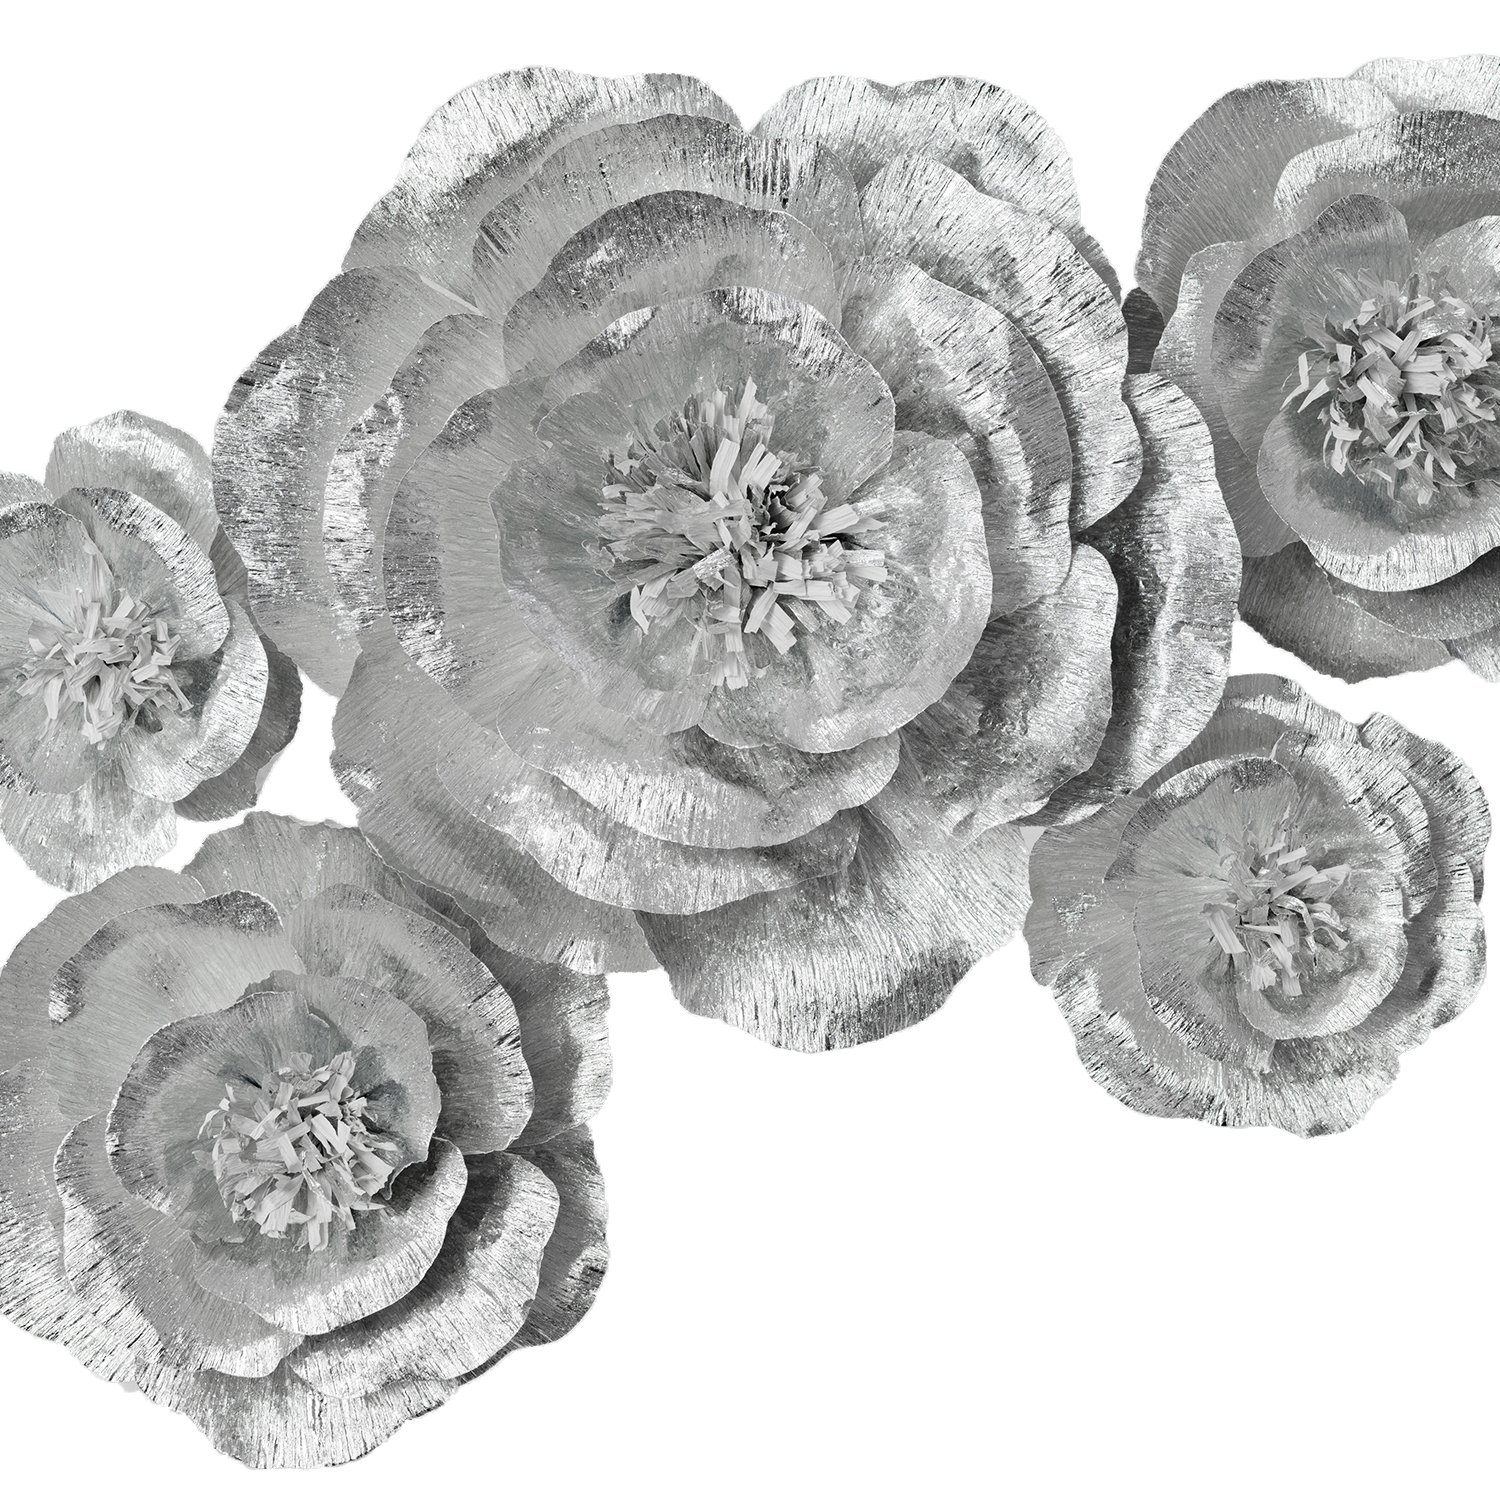 Paper Flower Decoration, Handcrafted Flowers, Crepe Paper Flowers Shiny Silver Set Of 5 For Wedding Backdrop, Baby Shower, Nursery Wall Decorations,Garden Party Photo Booth,Bridal Shower,Archway Decor